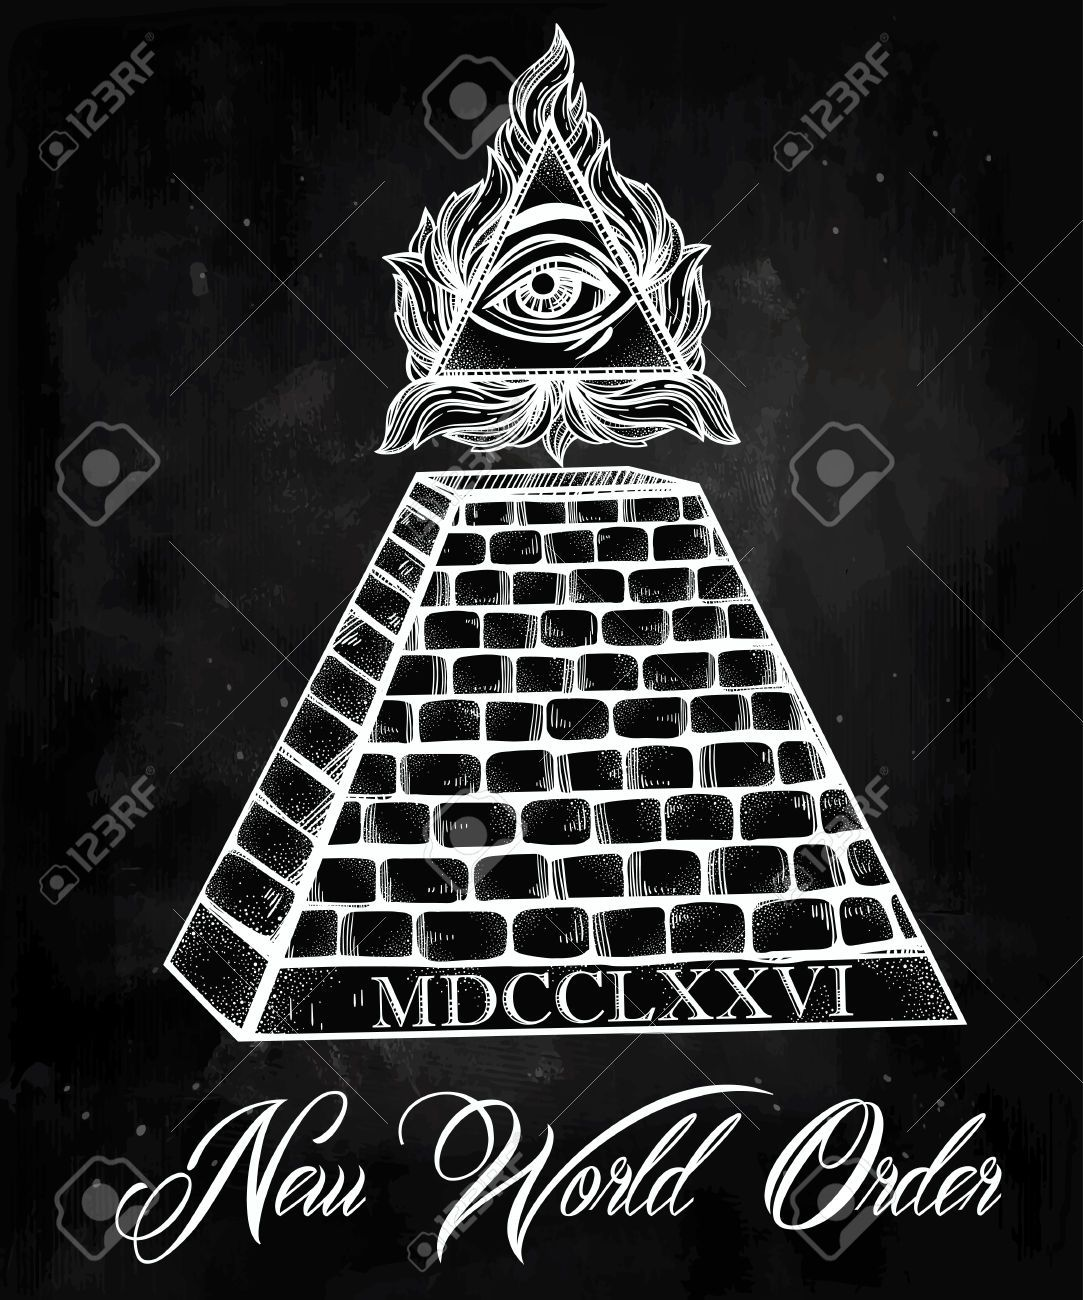 47704187 All Seeing Eye Pyramid Symbol New World Order Hand Drawn